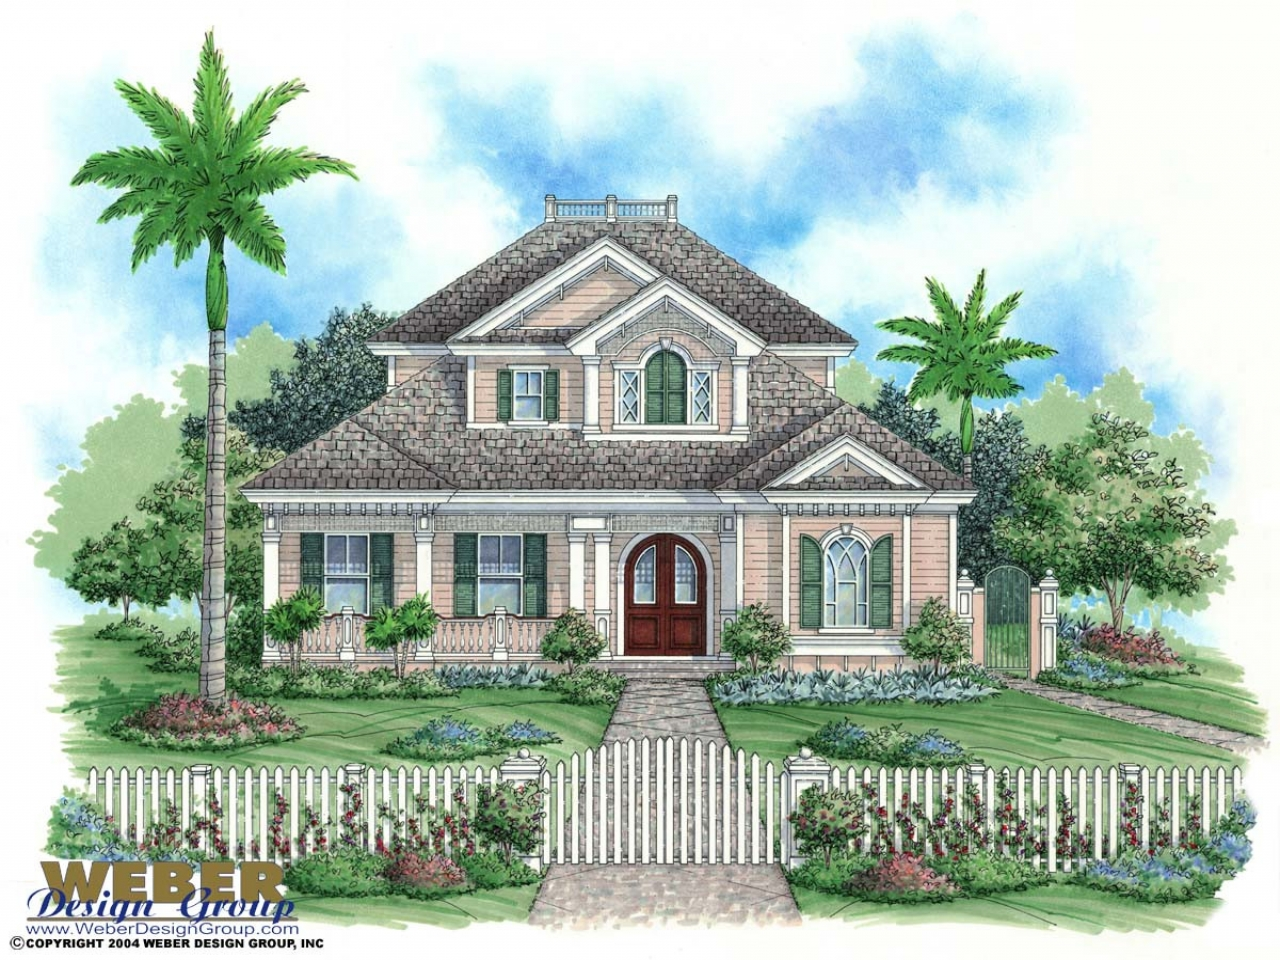 Key West Home Design Plans Key West House Plan Florida: florida style home plans